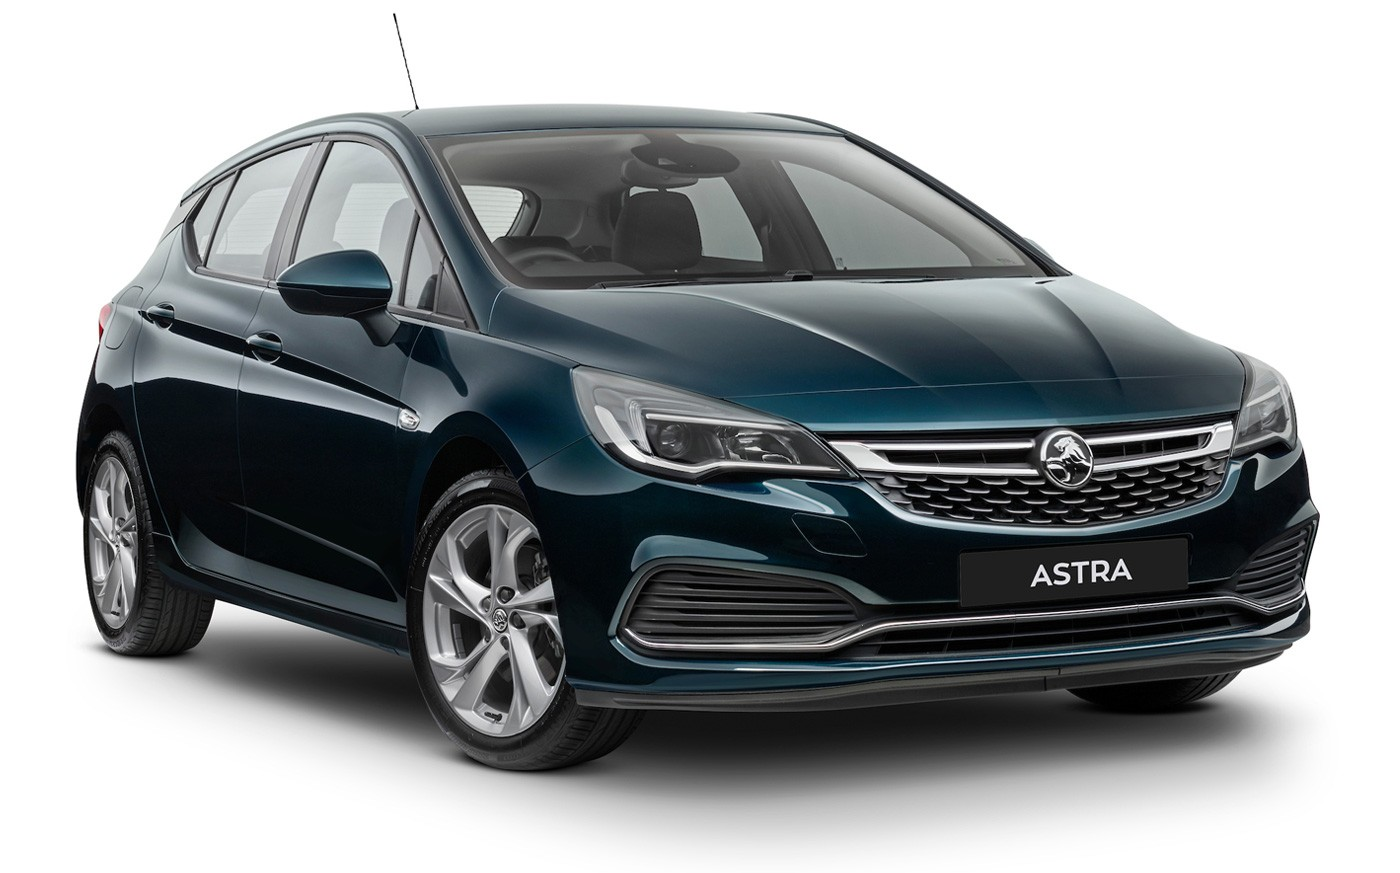 2017 Holden Astra For Australia Has Opc Line Kit And 200